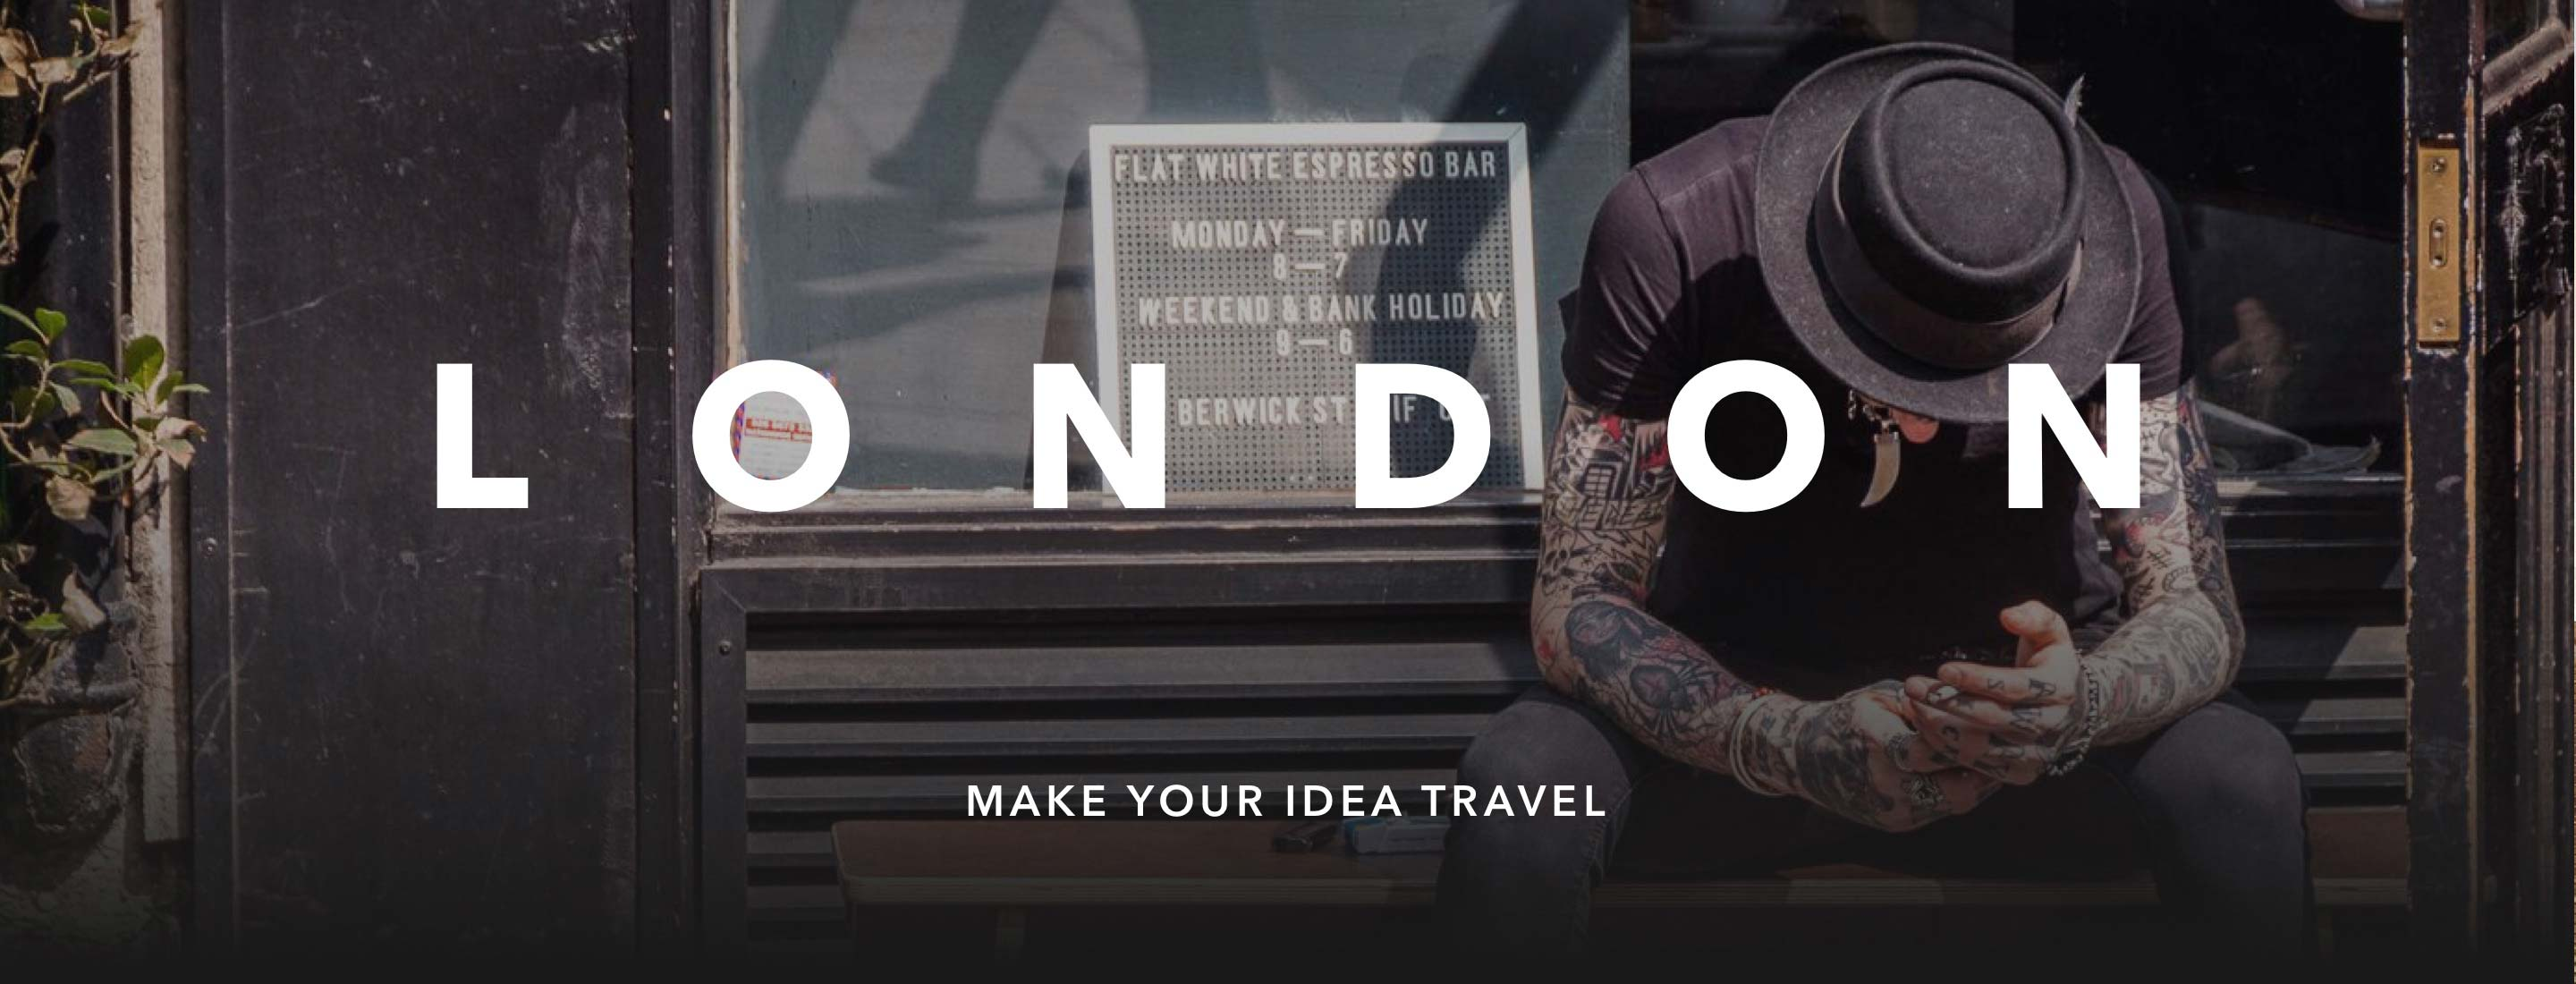 Make your ideas travel